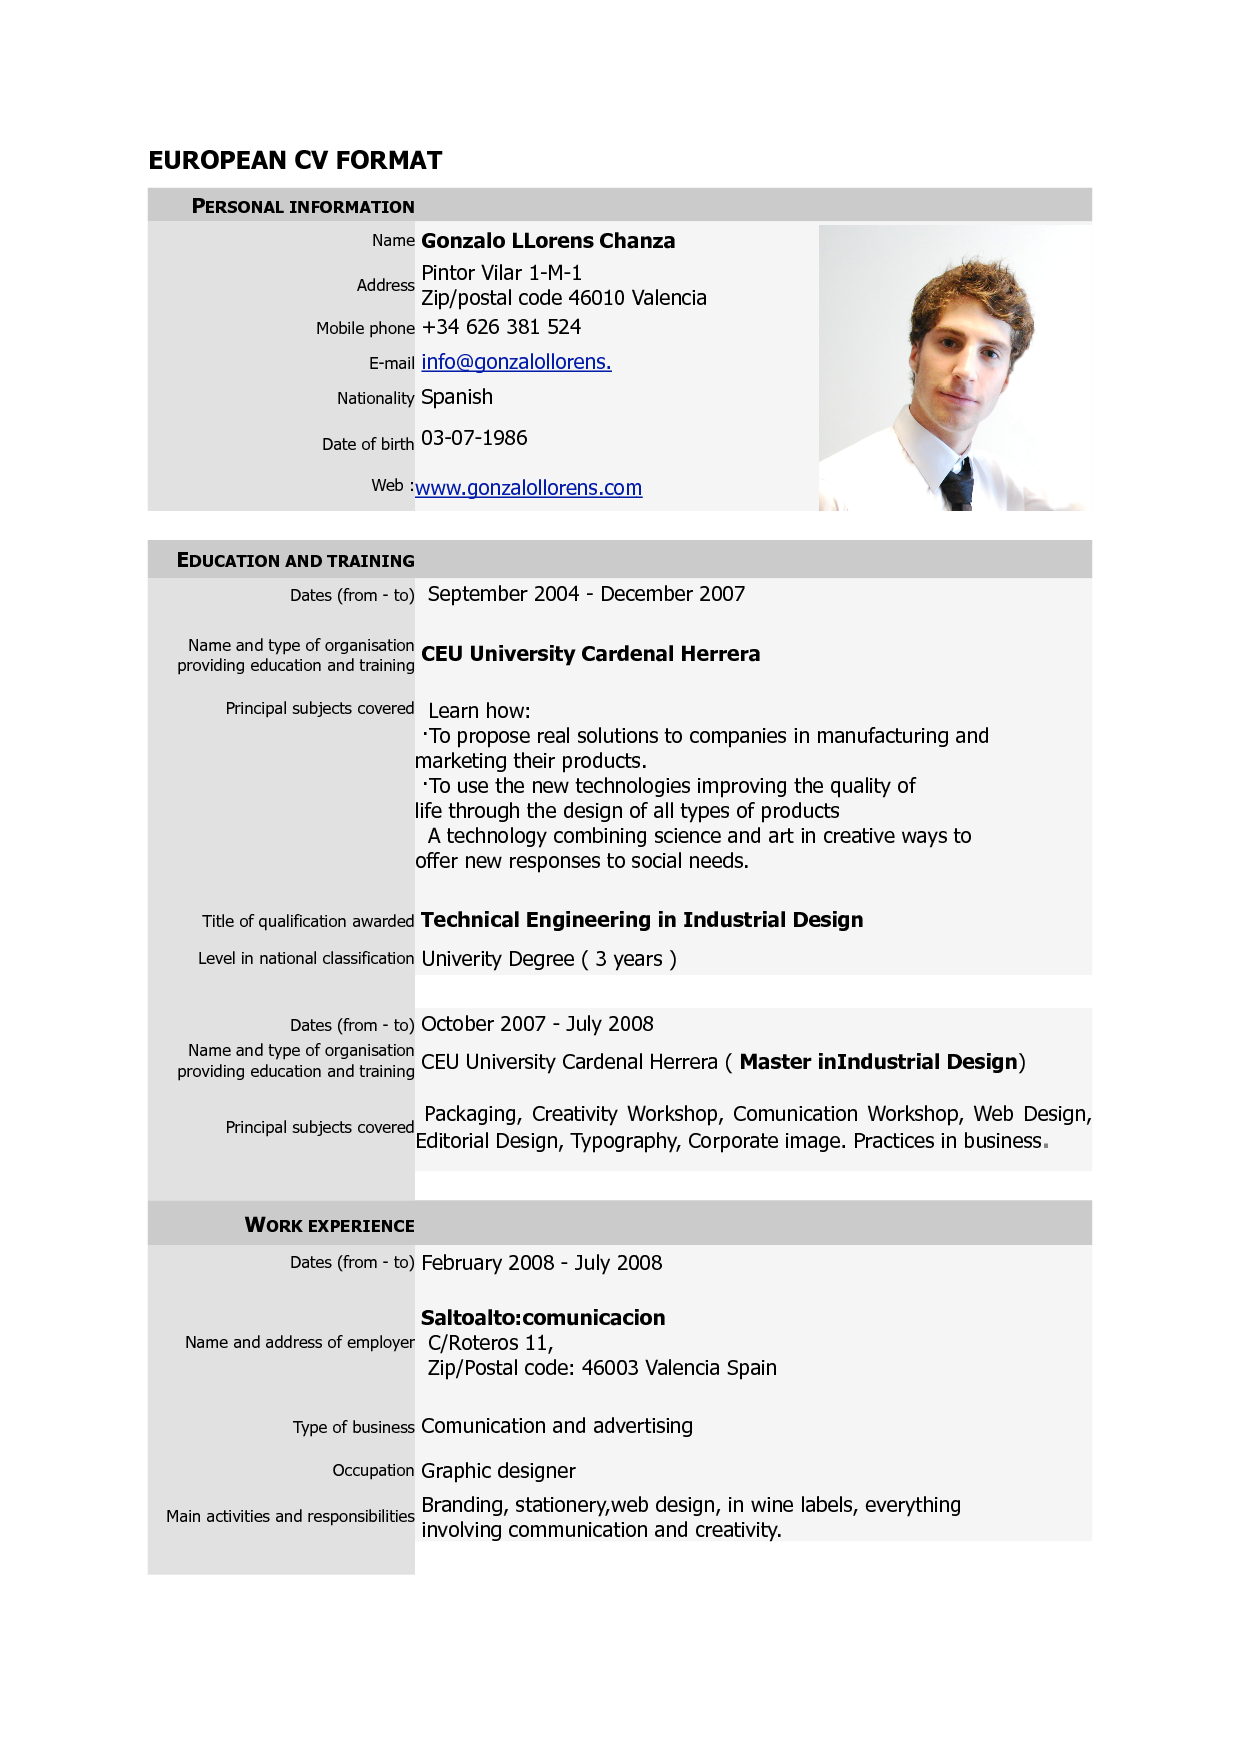 Resume Templates Tamu Simple Free Download Cv Europass Pdf Europass Home European Cv Format Pdf